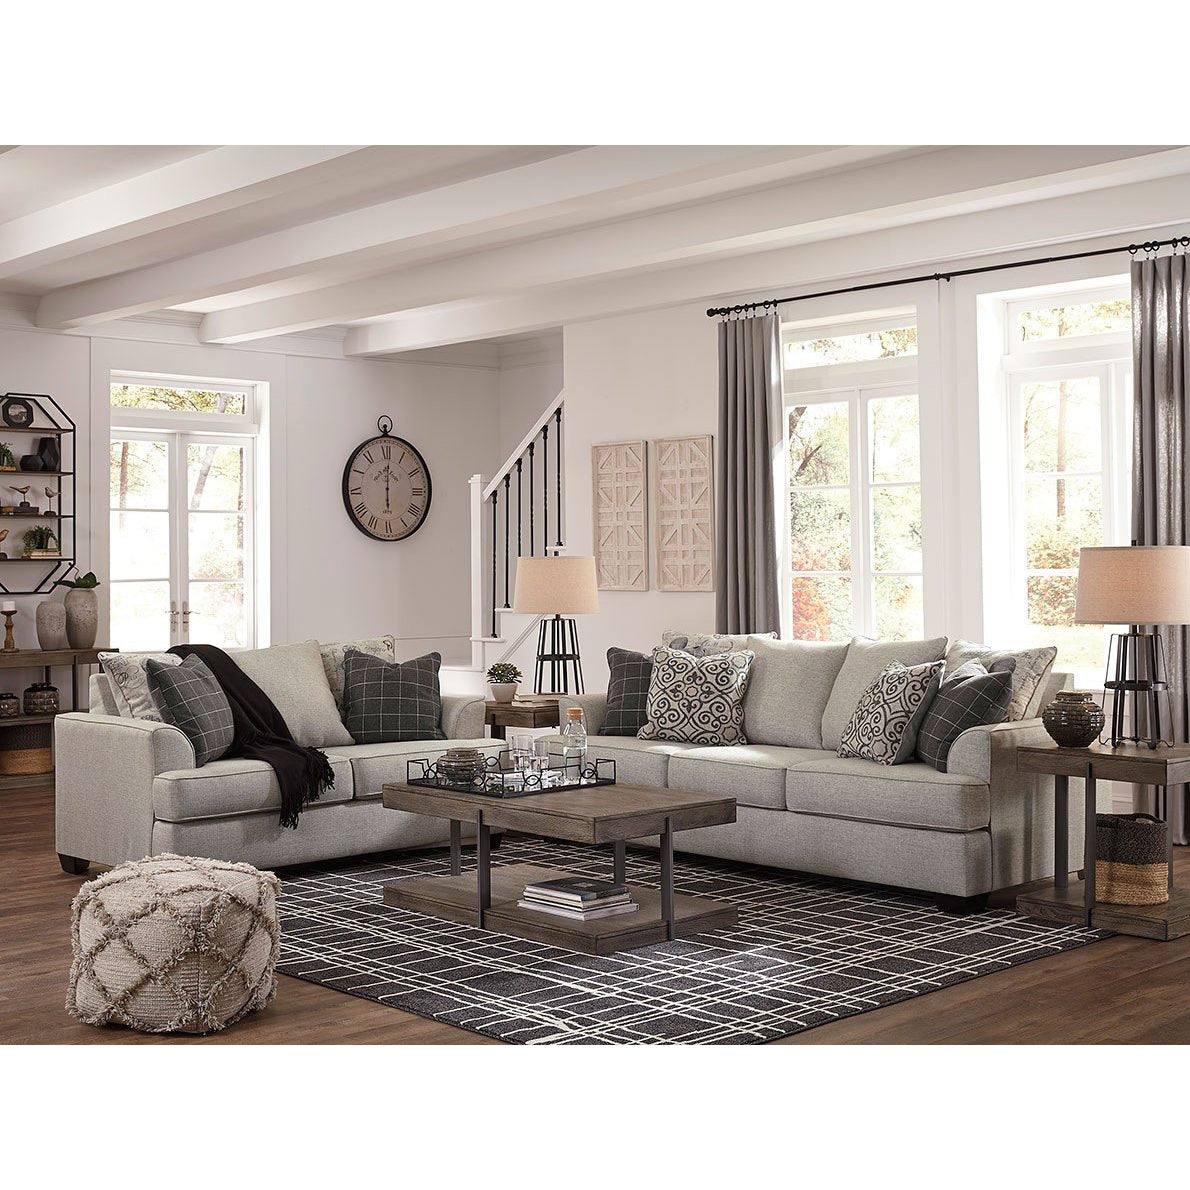 Velle Pewter Sofa and Loveseat Set